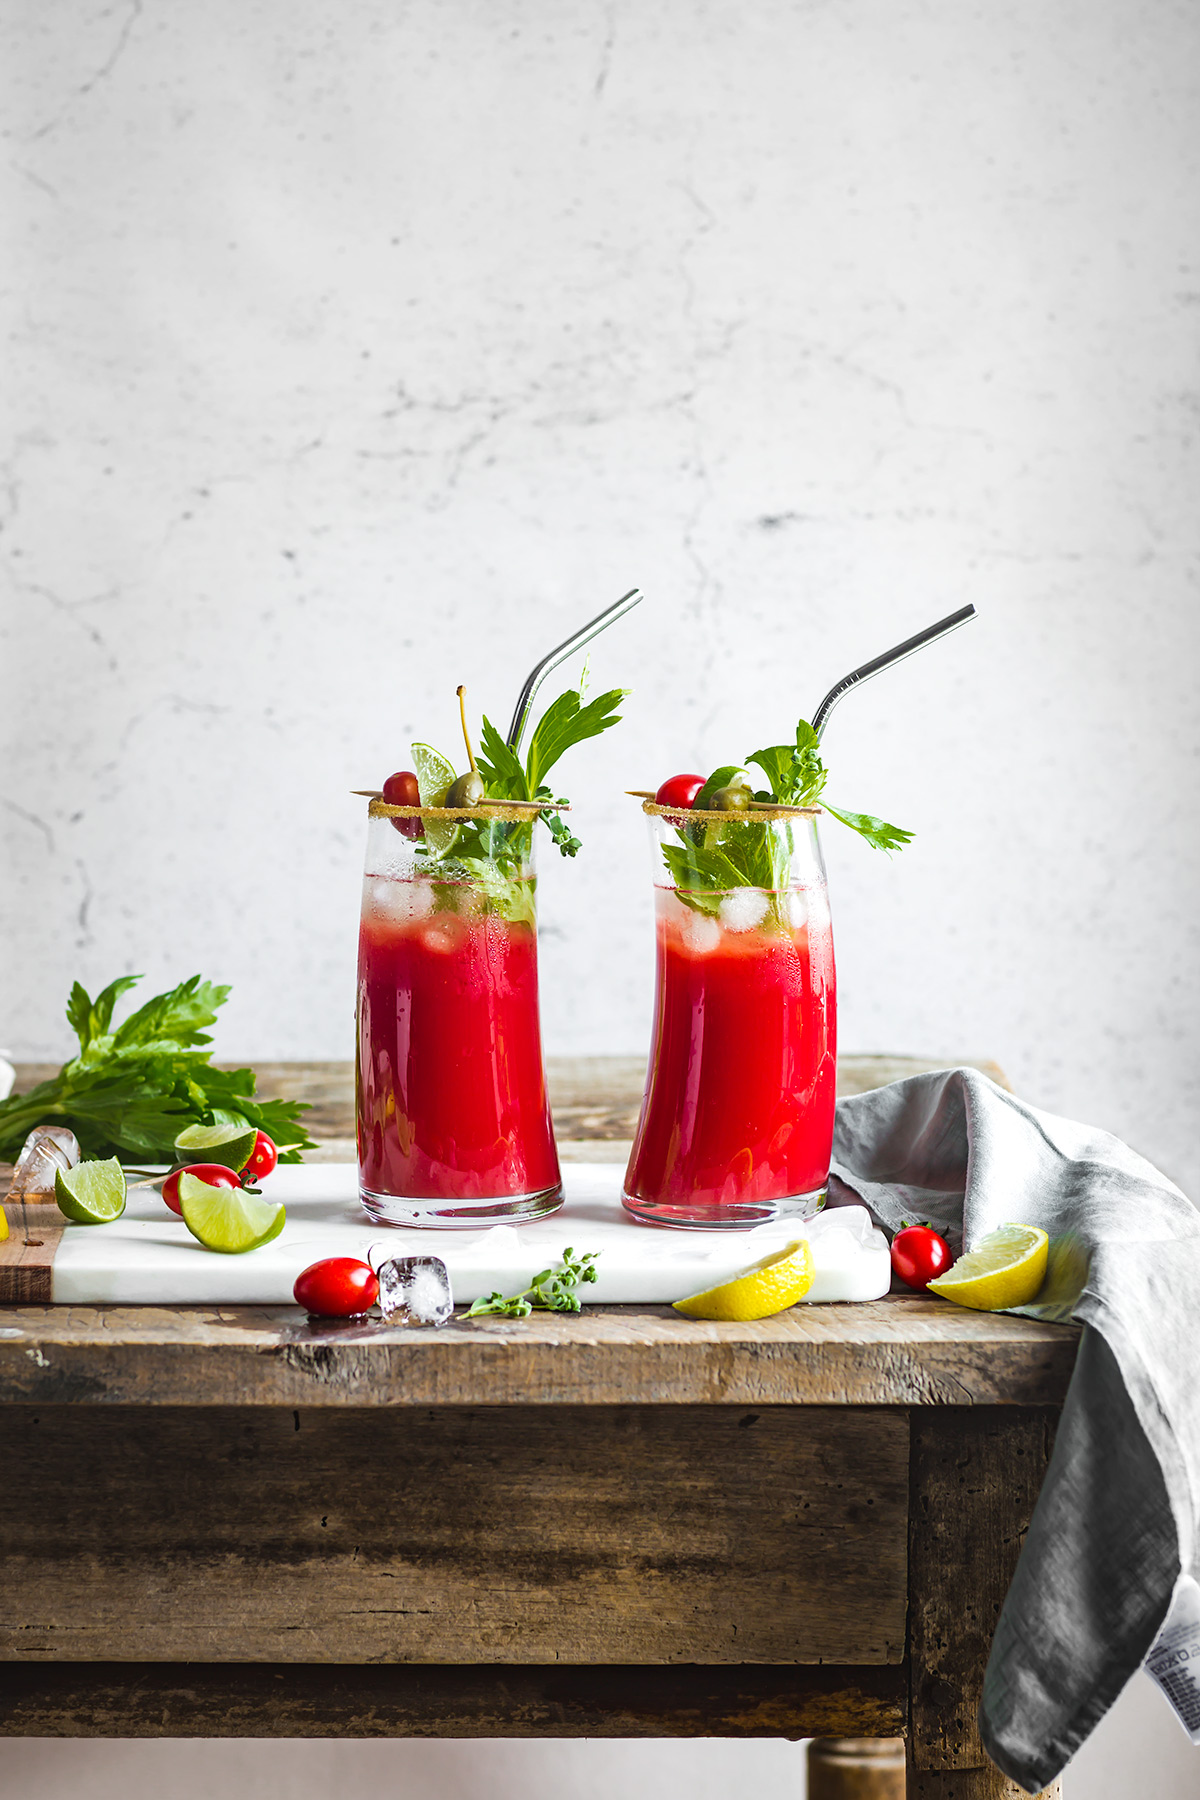 ricetta Bloody Mary Analcolico al Kefir d acqua per brunch #healthy cocktail vegan senza glutine Vegan Water Kefir Virgin Mary recipe NON-ALCOHOLIC BLOODY MARY #cocktail